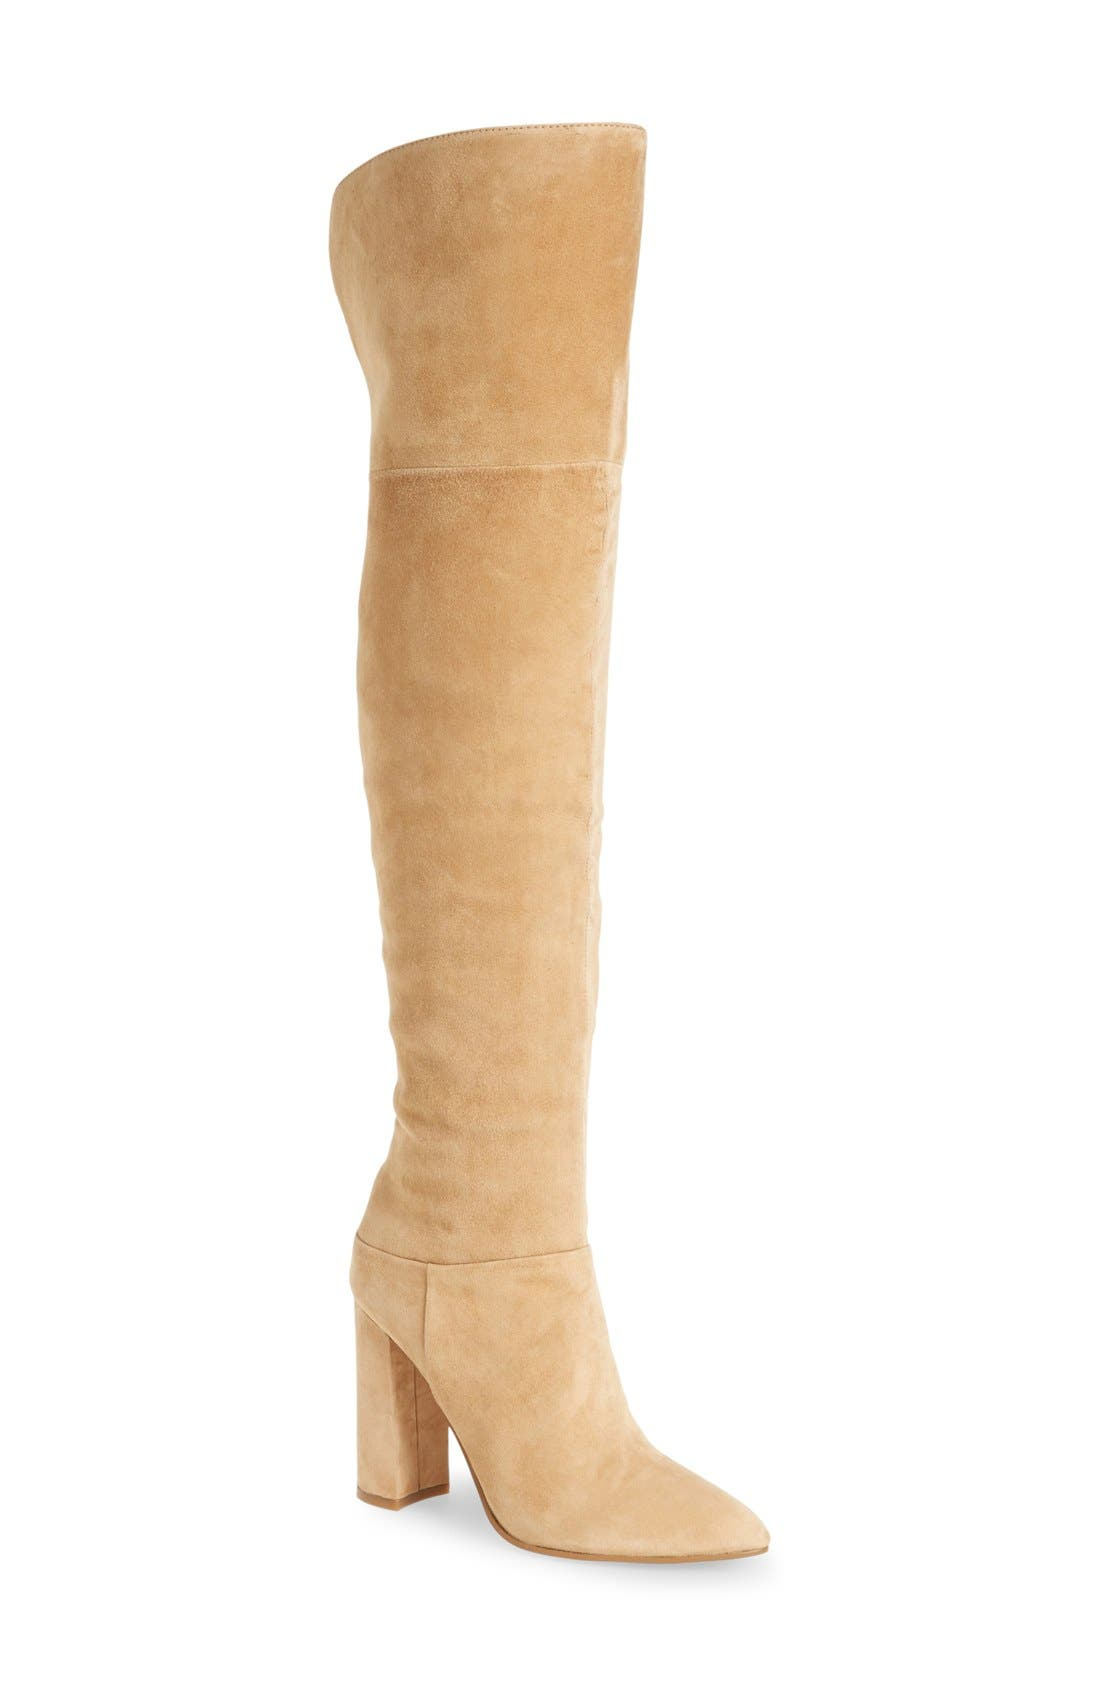 Alternate Image 1 Selected - Marc Fisher LTD 'Breley' Over the Knee Boot (Women)